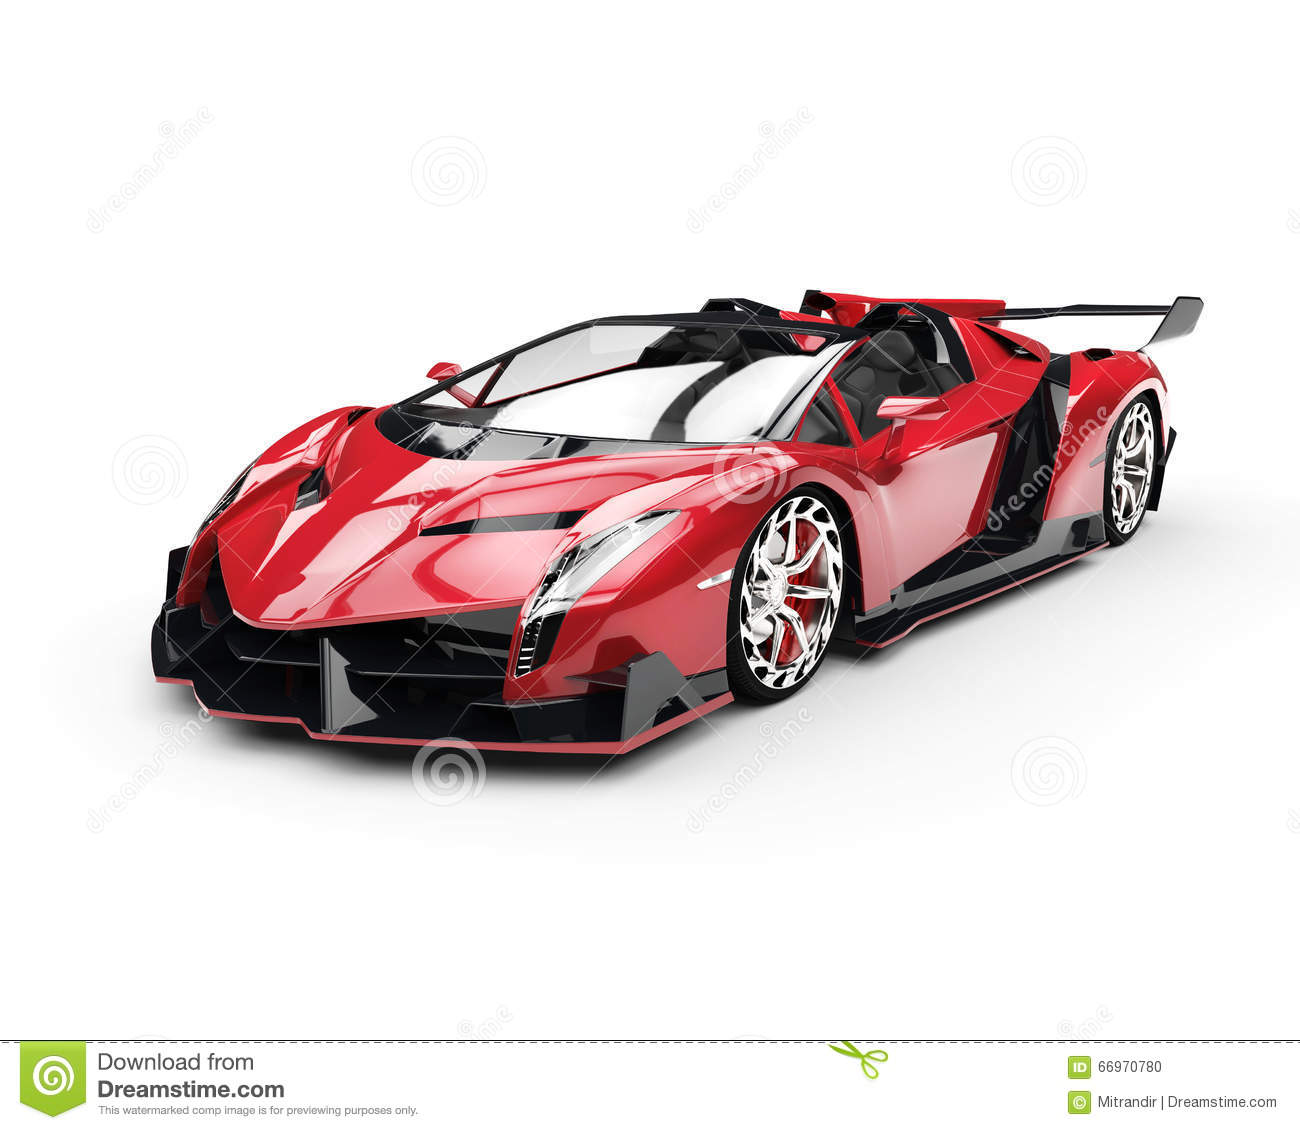 Voiture de course superbe rouge illustration stock illustration du coupe projectile 66970780 - Voiture de course image ...